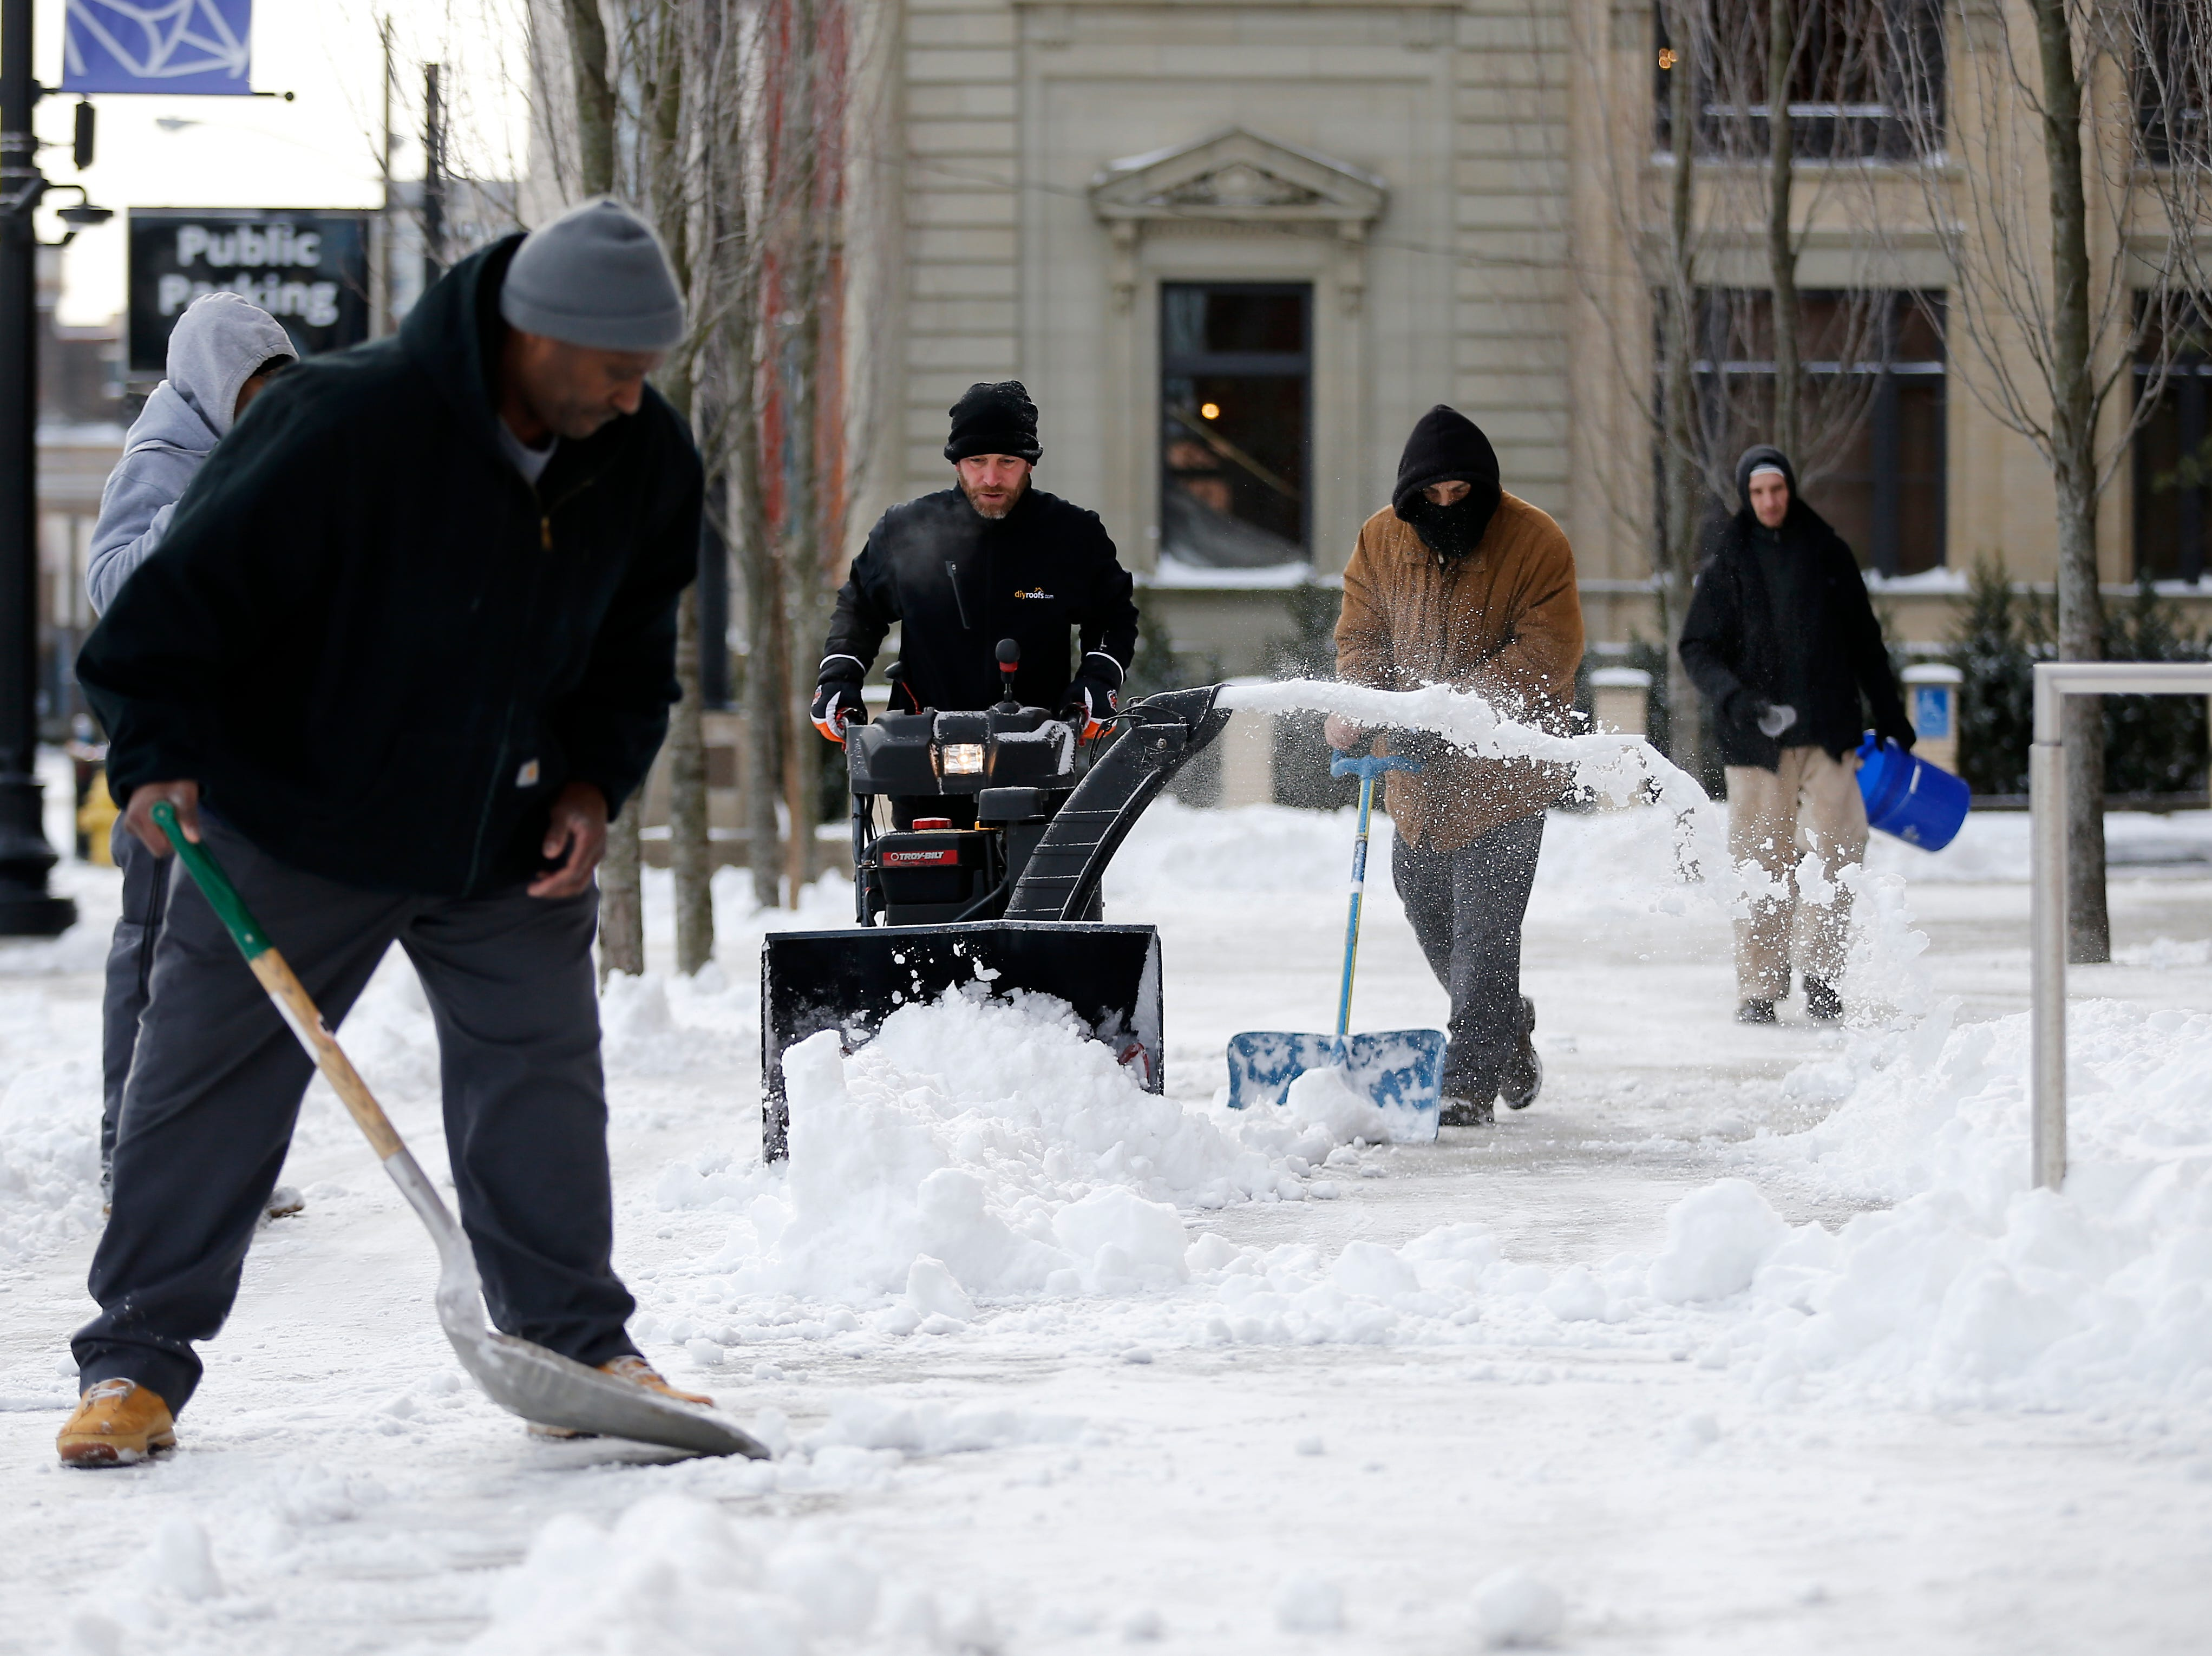 A crew works to crew the area in front of Music Hall ahead of tonight's Pops in Space show in the Over-the-Rhine neighborhood of Cincinnati on Sunday, Jan. 20, 2019. Temperatures remain below 15 degrees with windchills as low as 4 in the region Sunday.